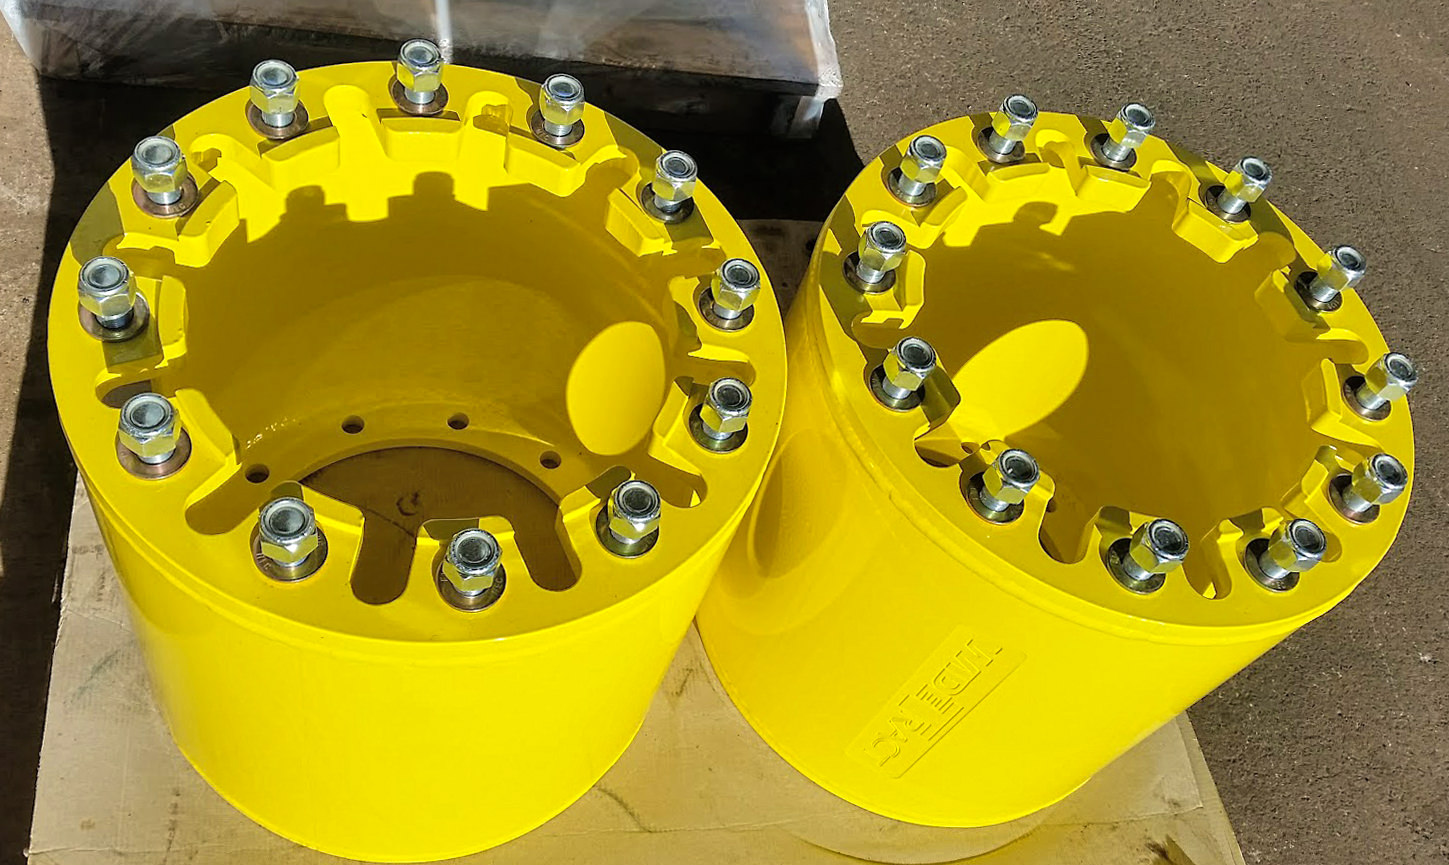 John Deere wheel spacers with waffle flange for quicker fitting. Click for enlarged view